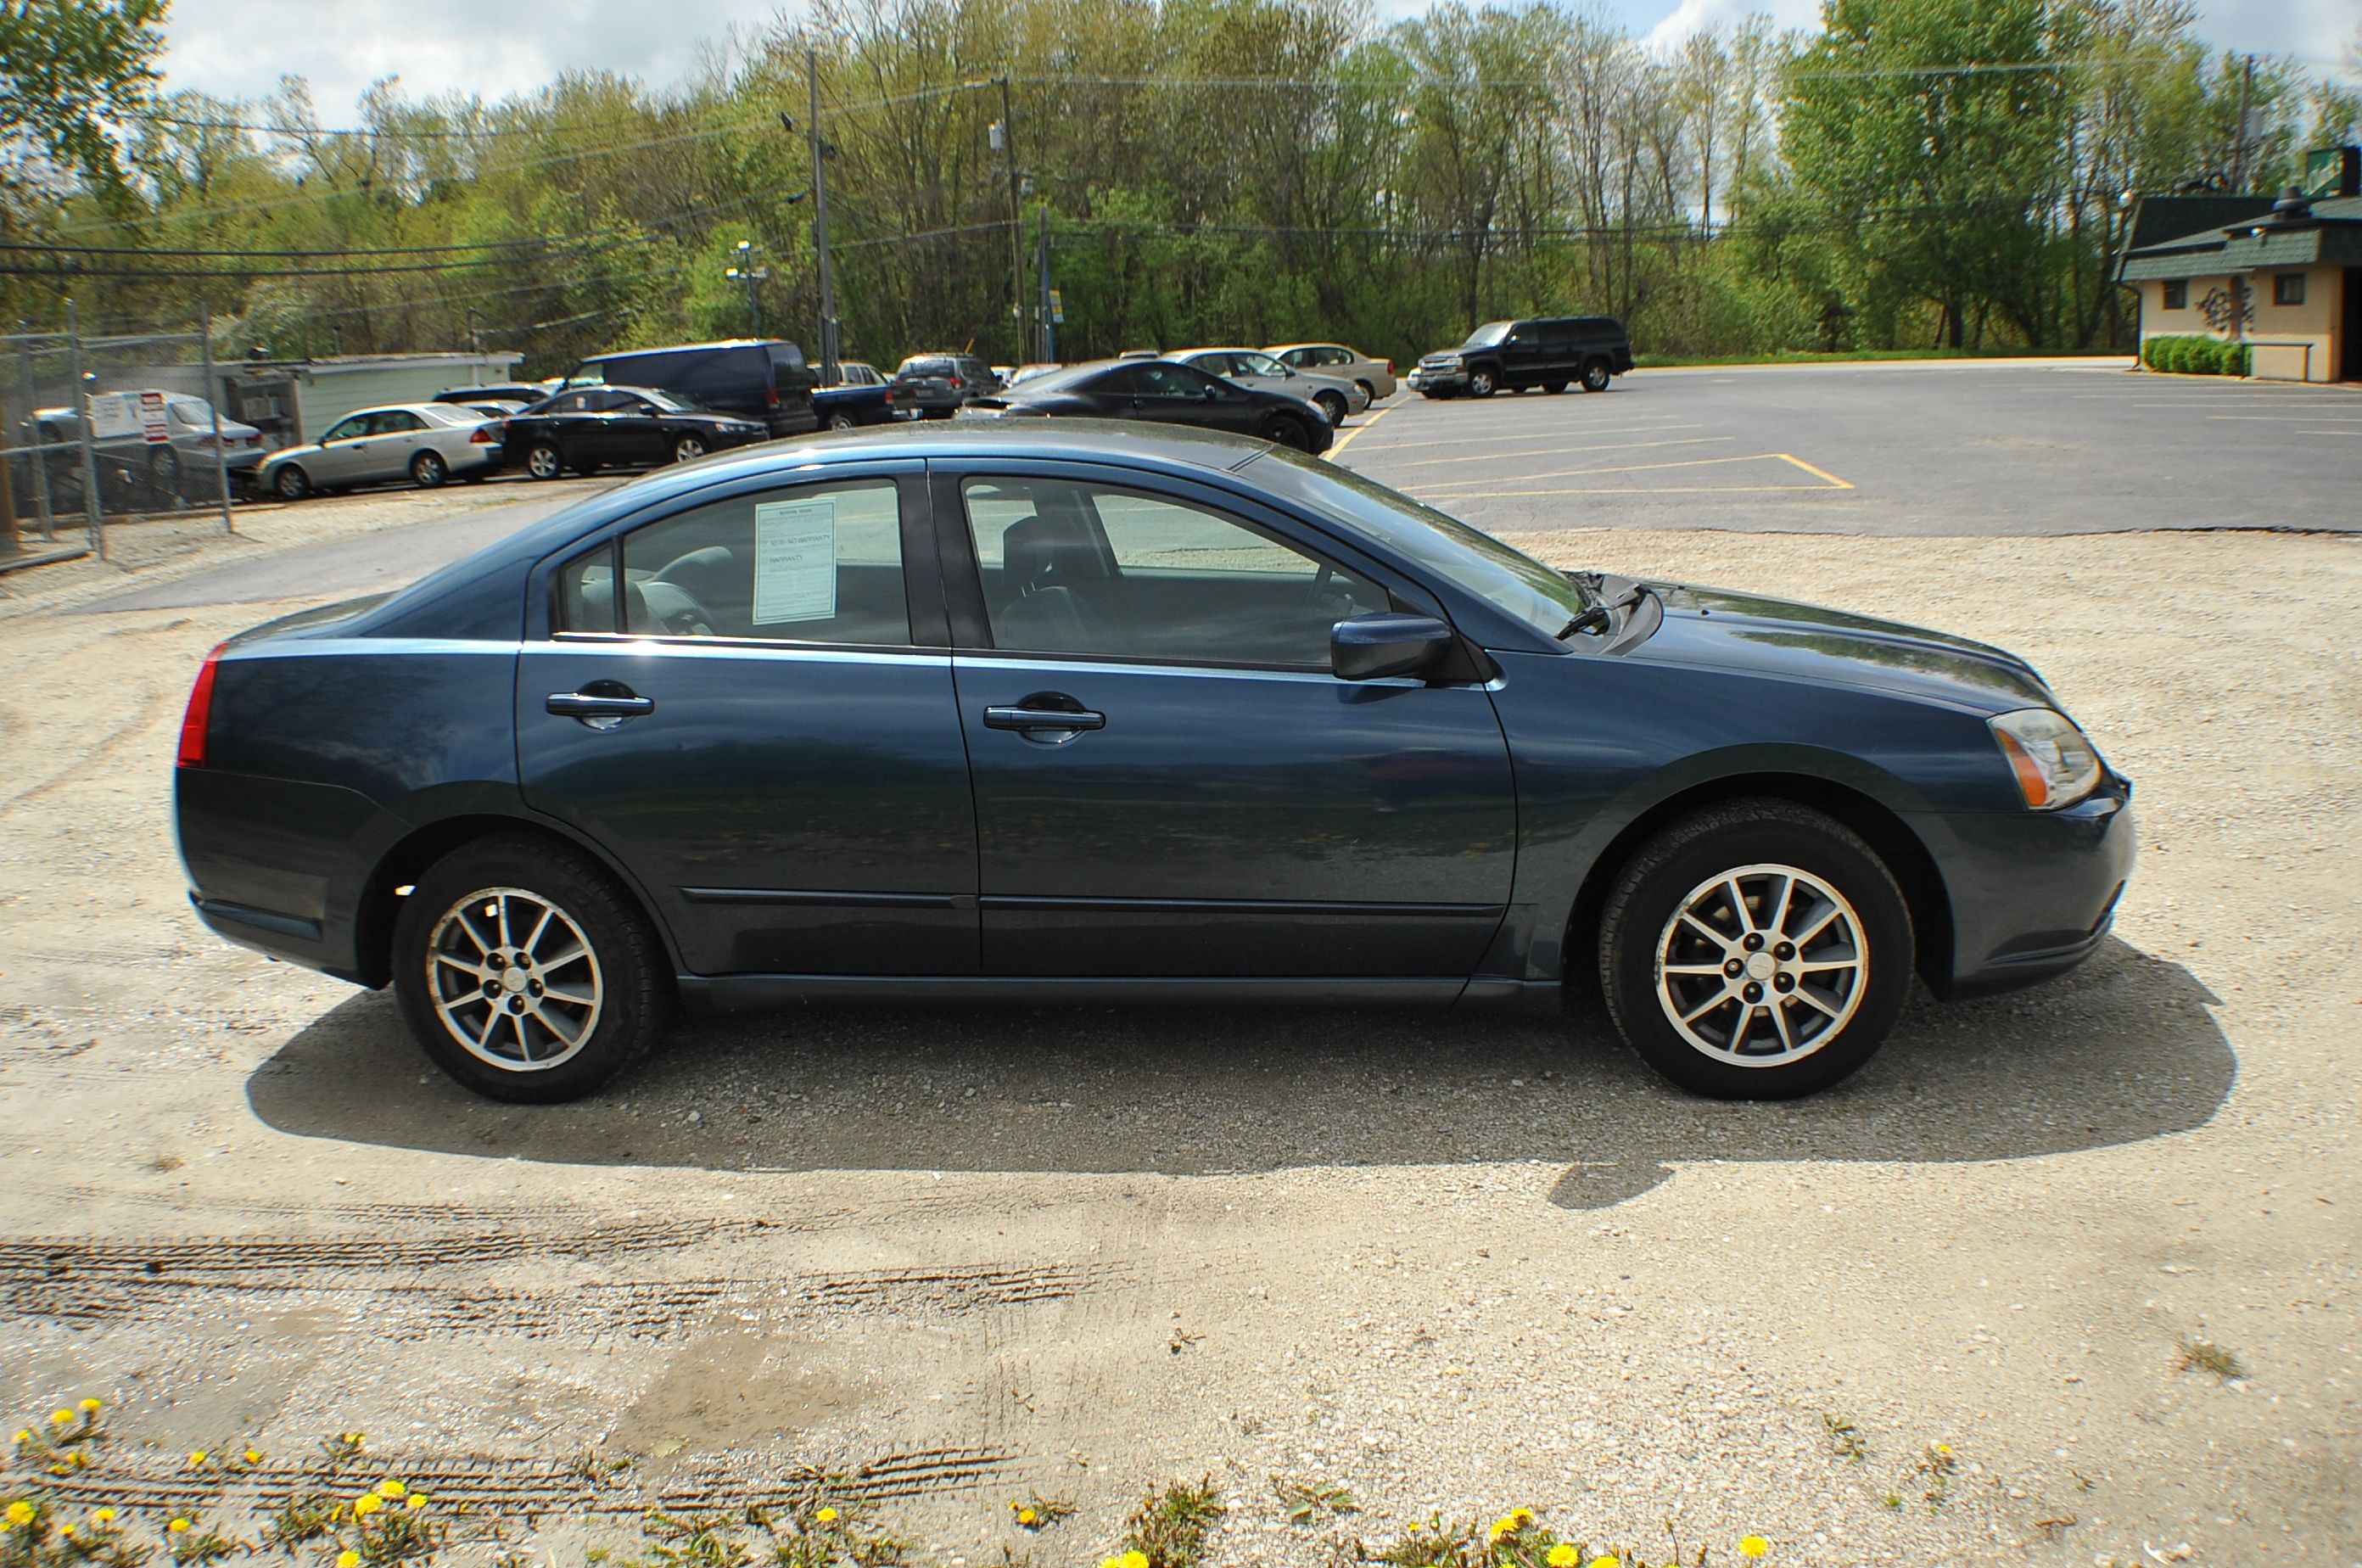 2005 Mitsubishi Galant ES Blue Sedan Used Car Sale Kenosha Mchenry Bannockburn Barrington